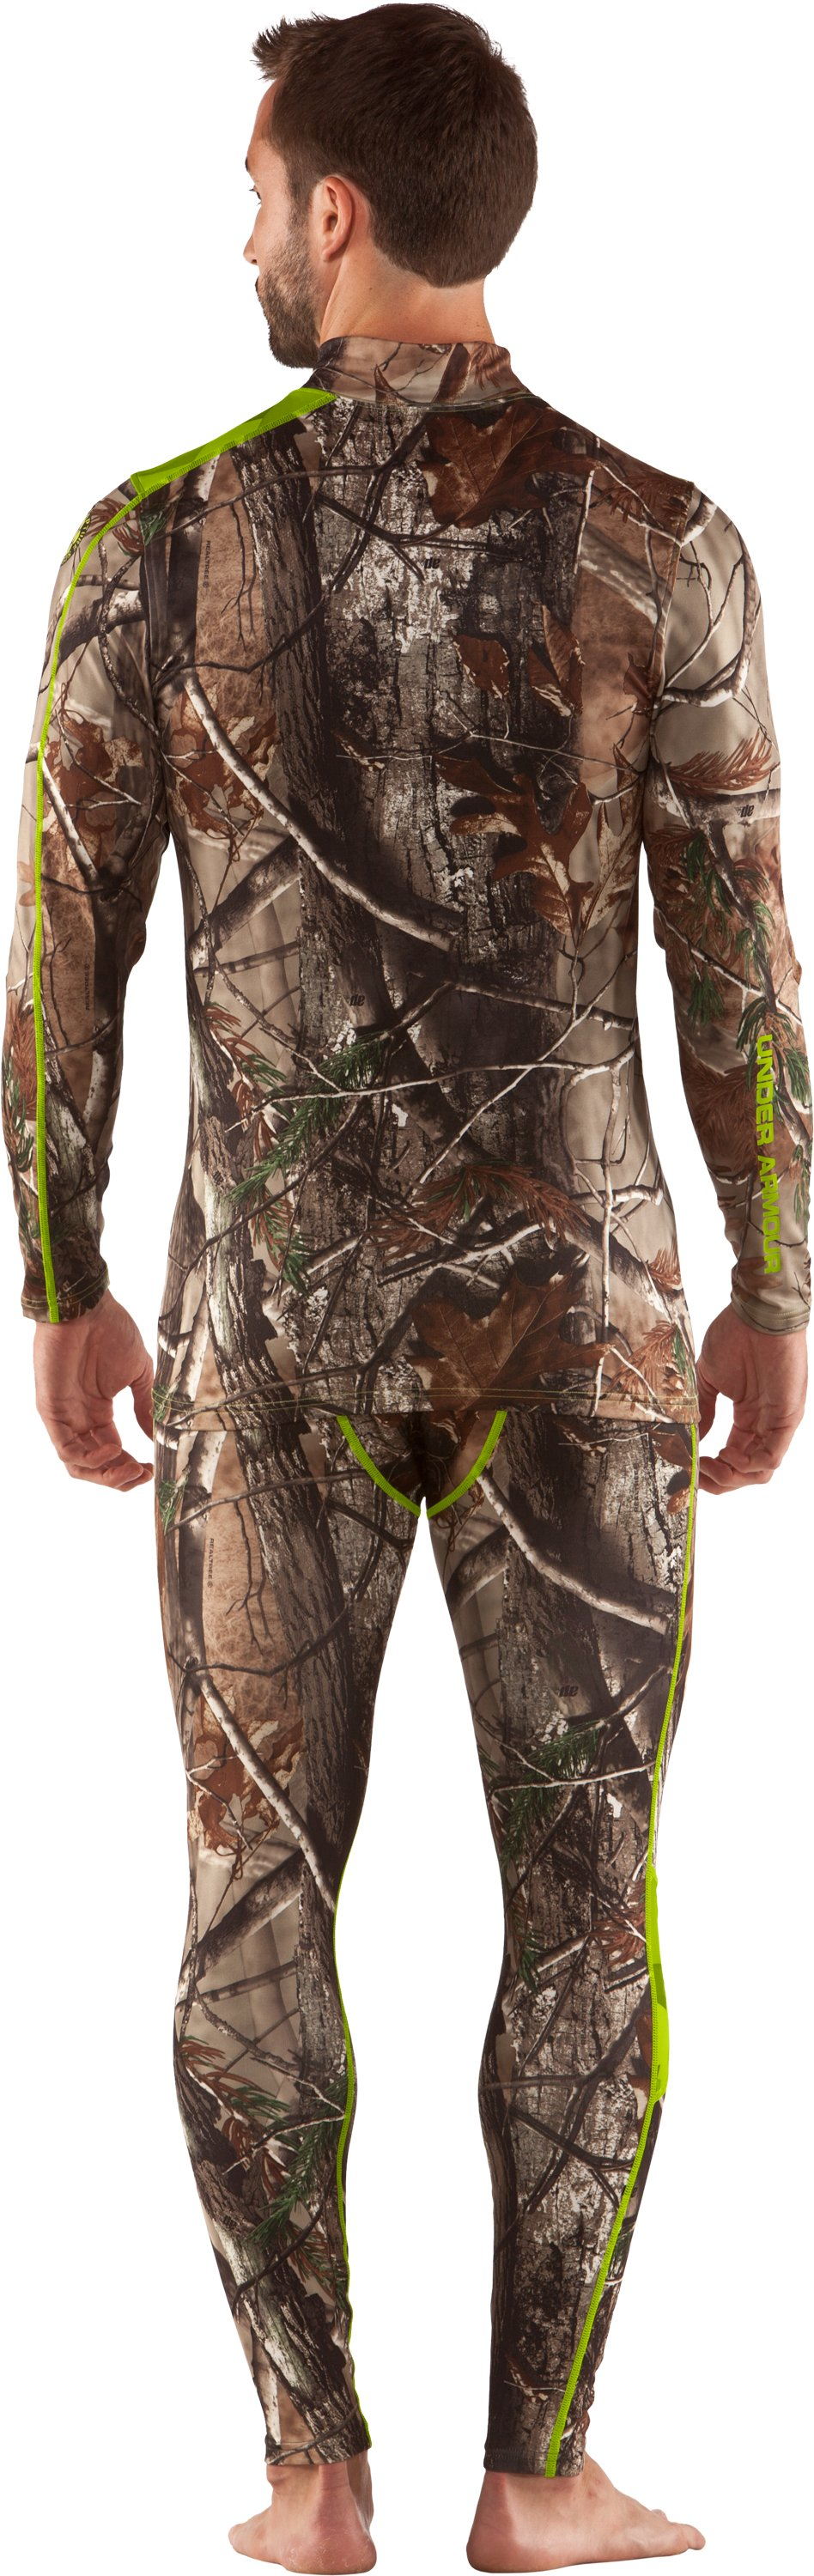 Men's ColdGear® Evo Scent Control Mock, Realtree AP, Back